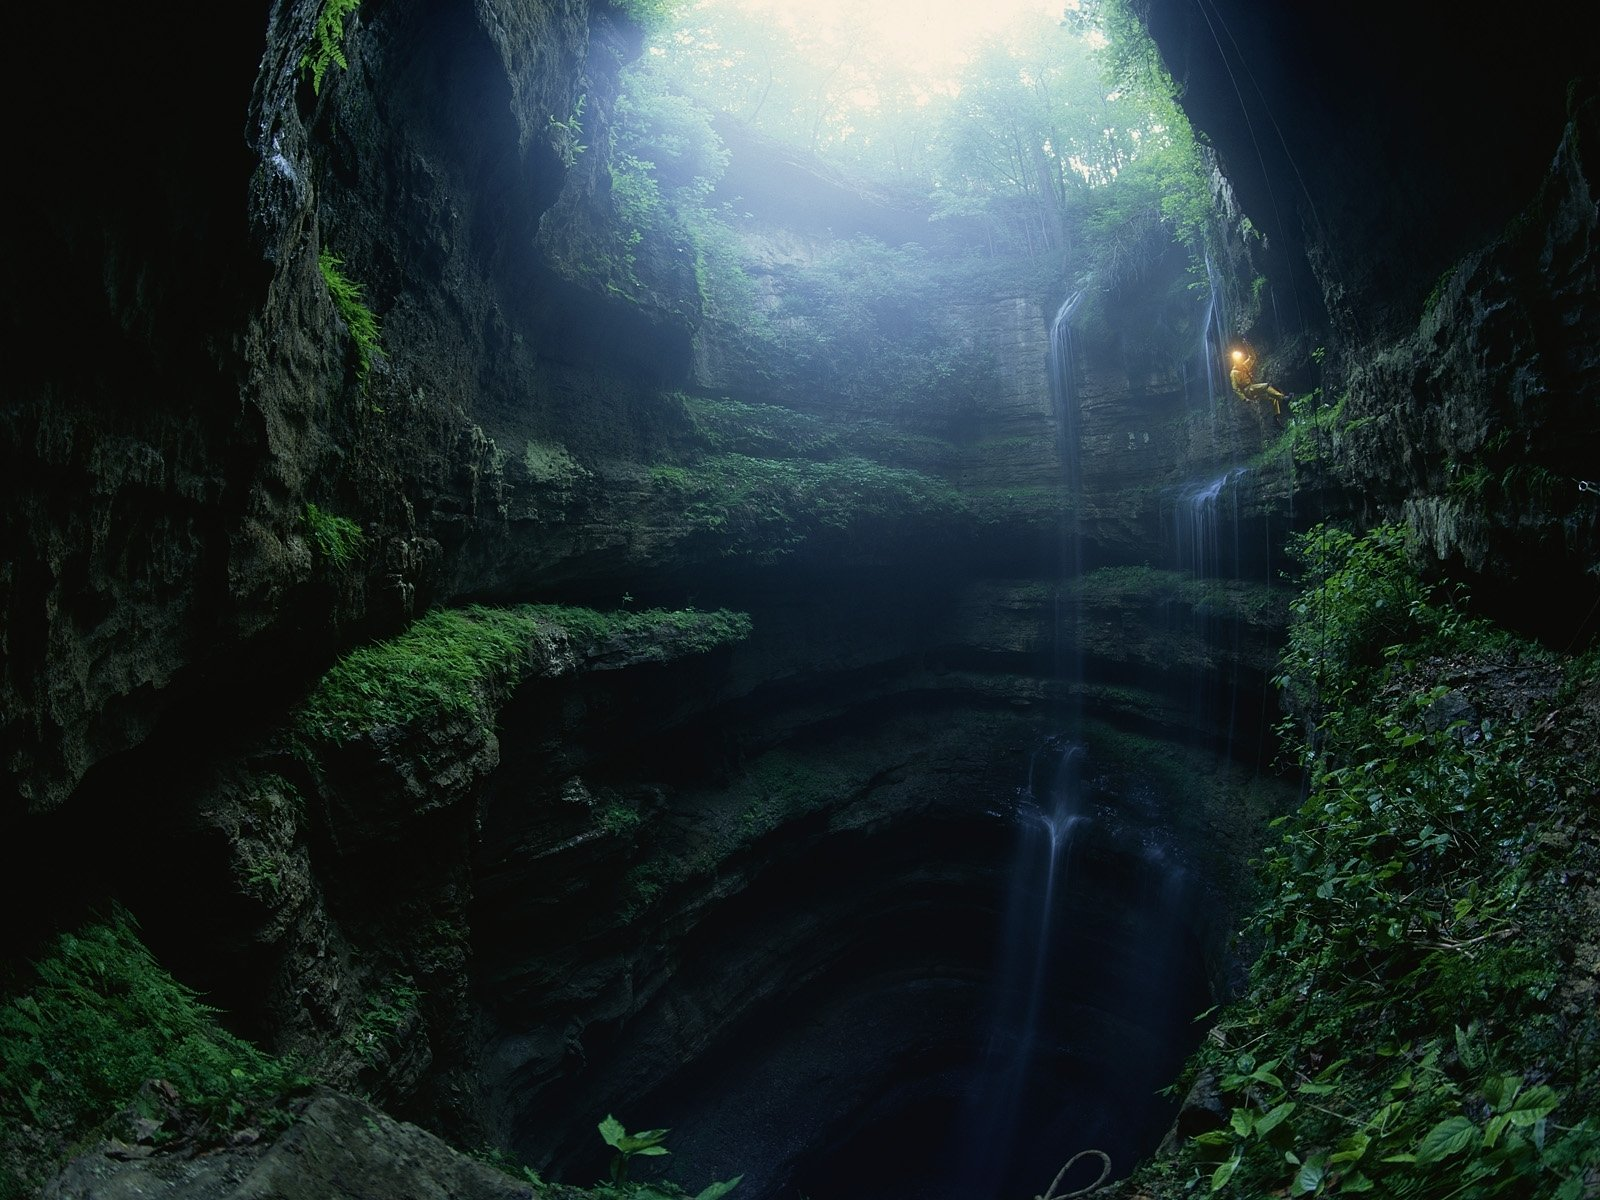 climbing caves landscapes waterfalls people jungle wallpaper 1600x1200